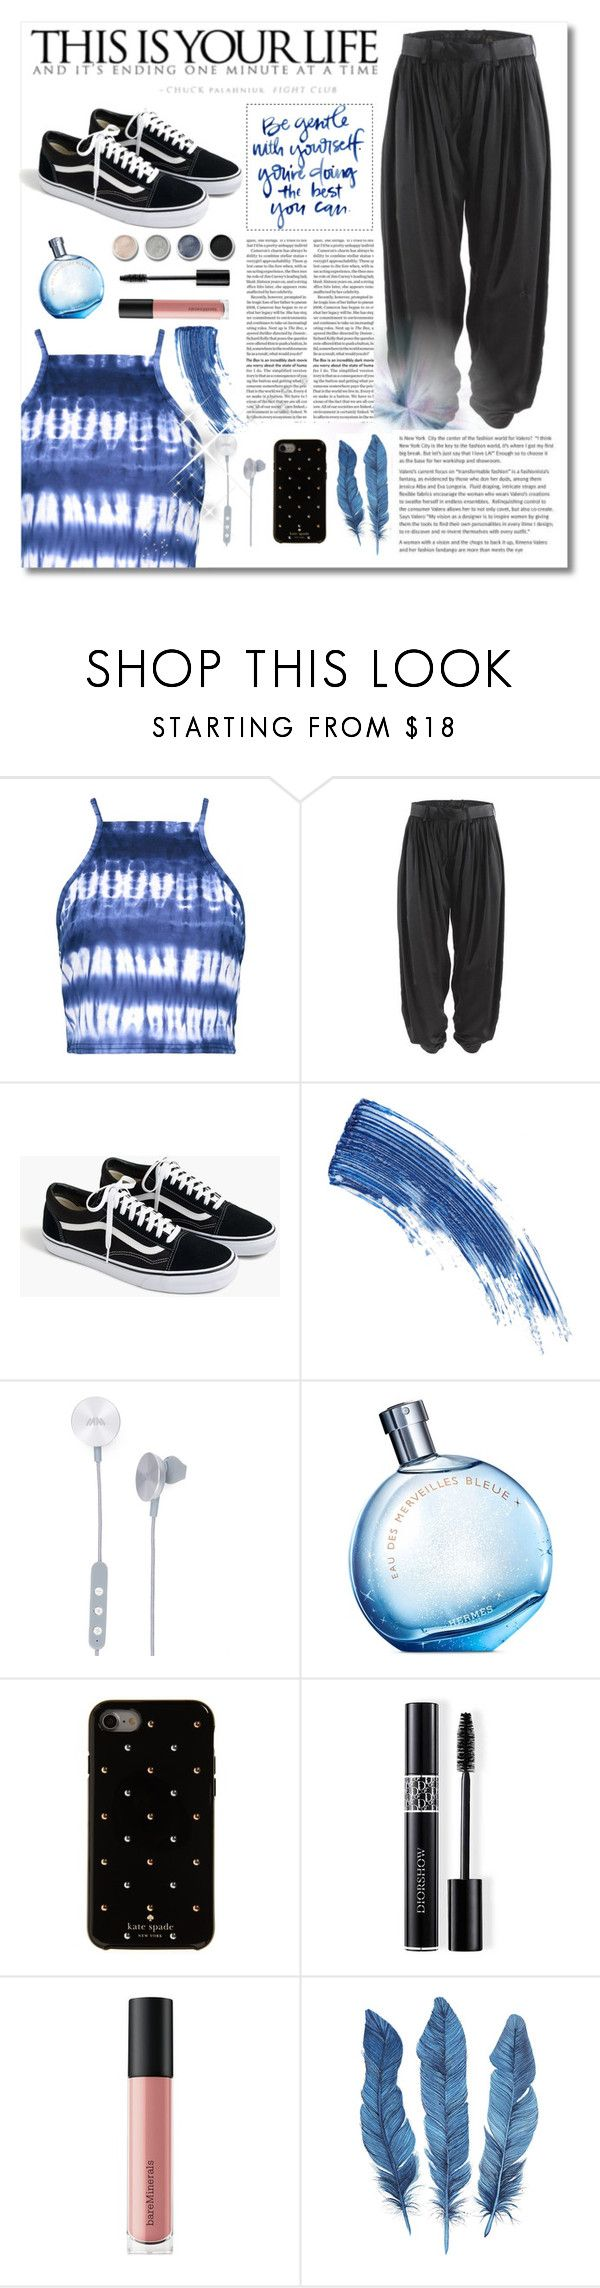 """Untitled #52"" by alyssa-1221 ❤ liked on Polyvore featuring Boohoo, Undercover, J.Crew, Eyeko, i.am+, Hermès, Terre Mère, Kate Spade, Christian Dior and Bare Escentuals"